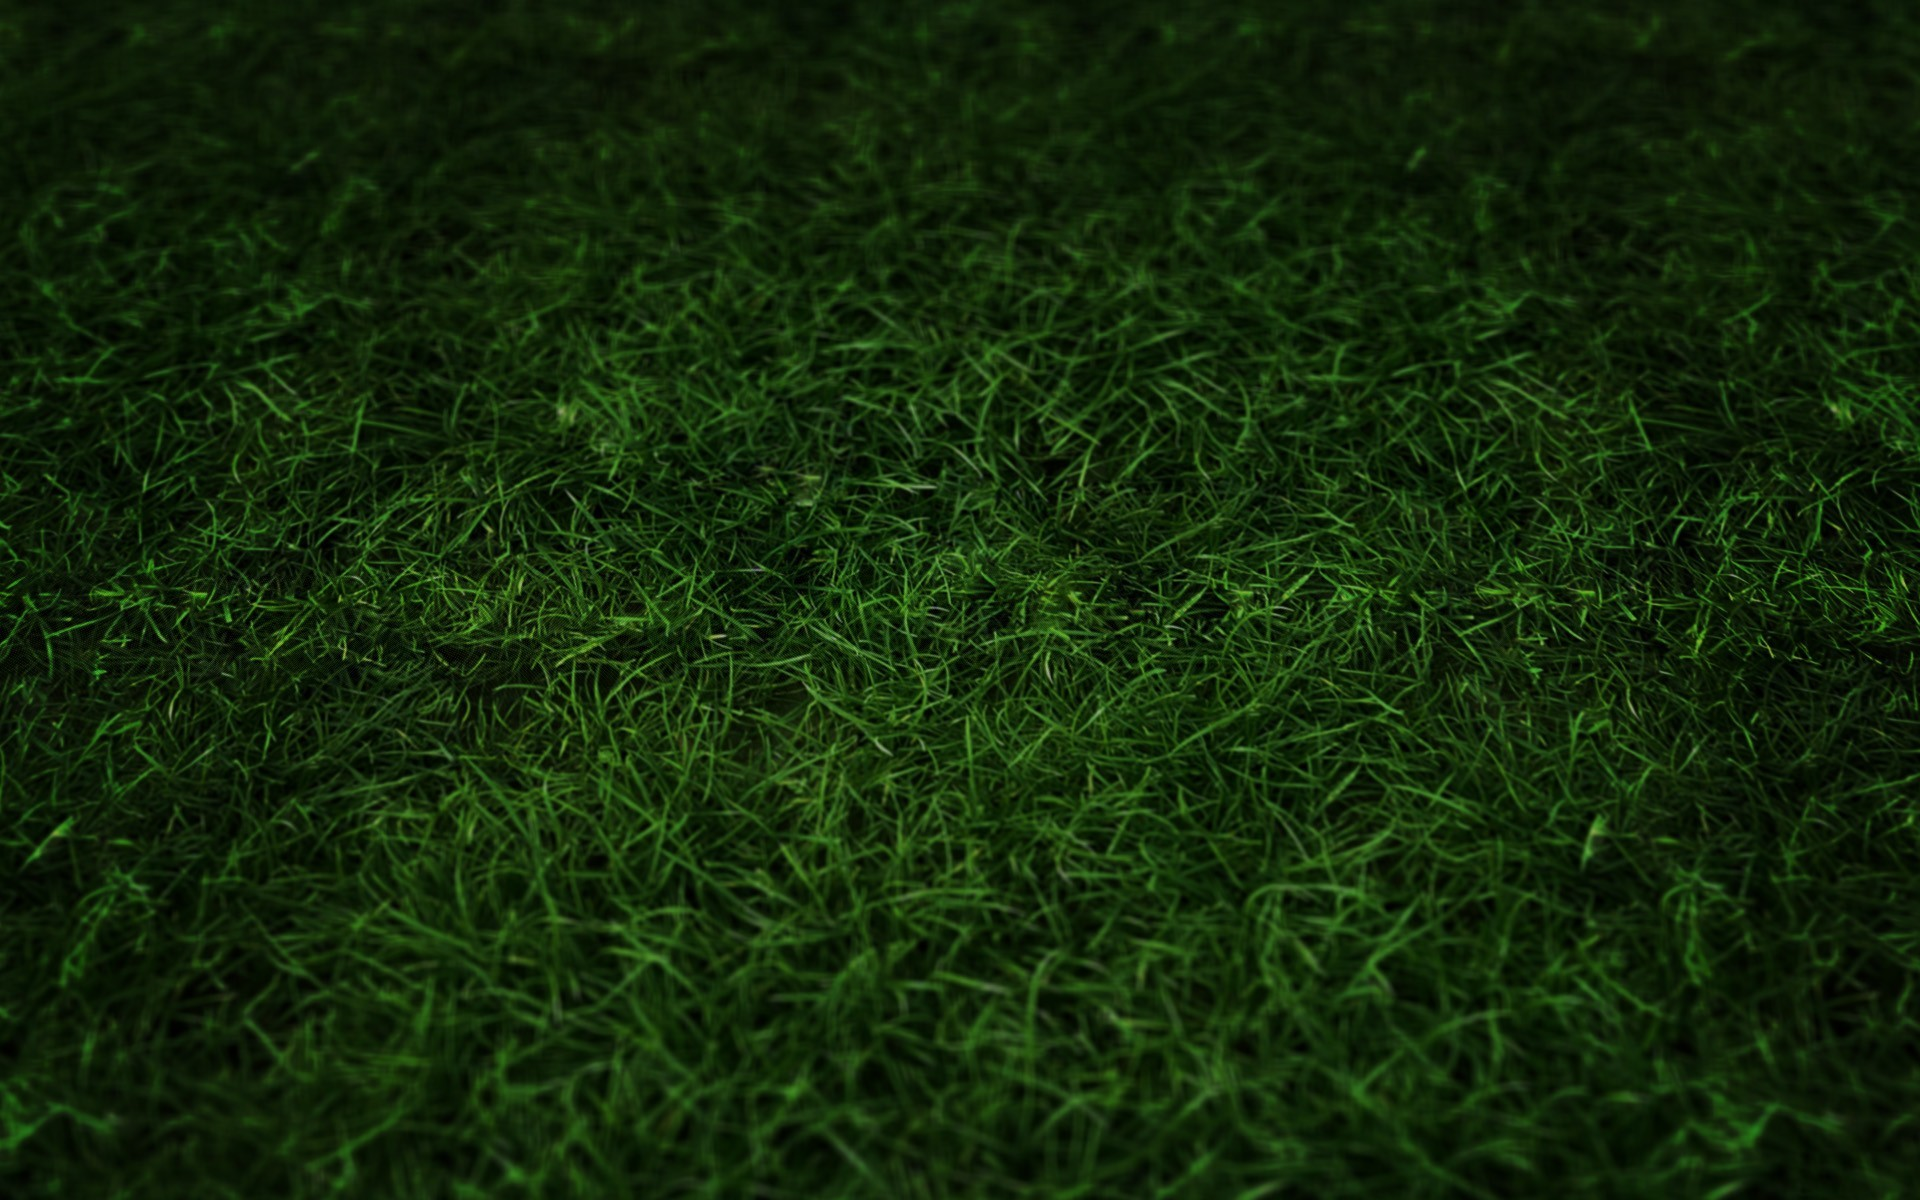 Football Field Grass Wallpaper Green grass 1280x800 wallpaper 1920x1200